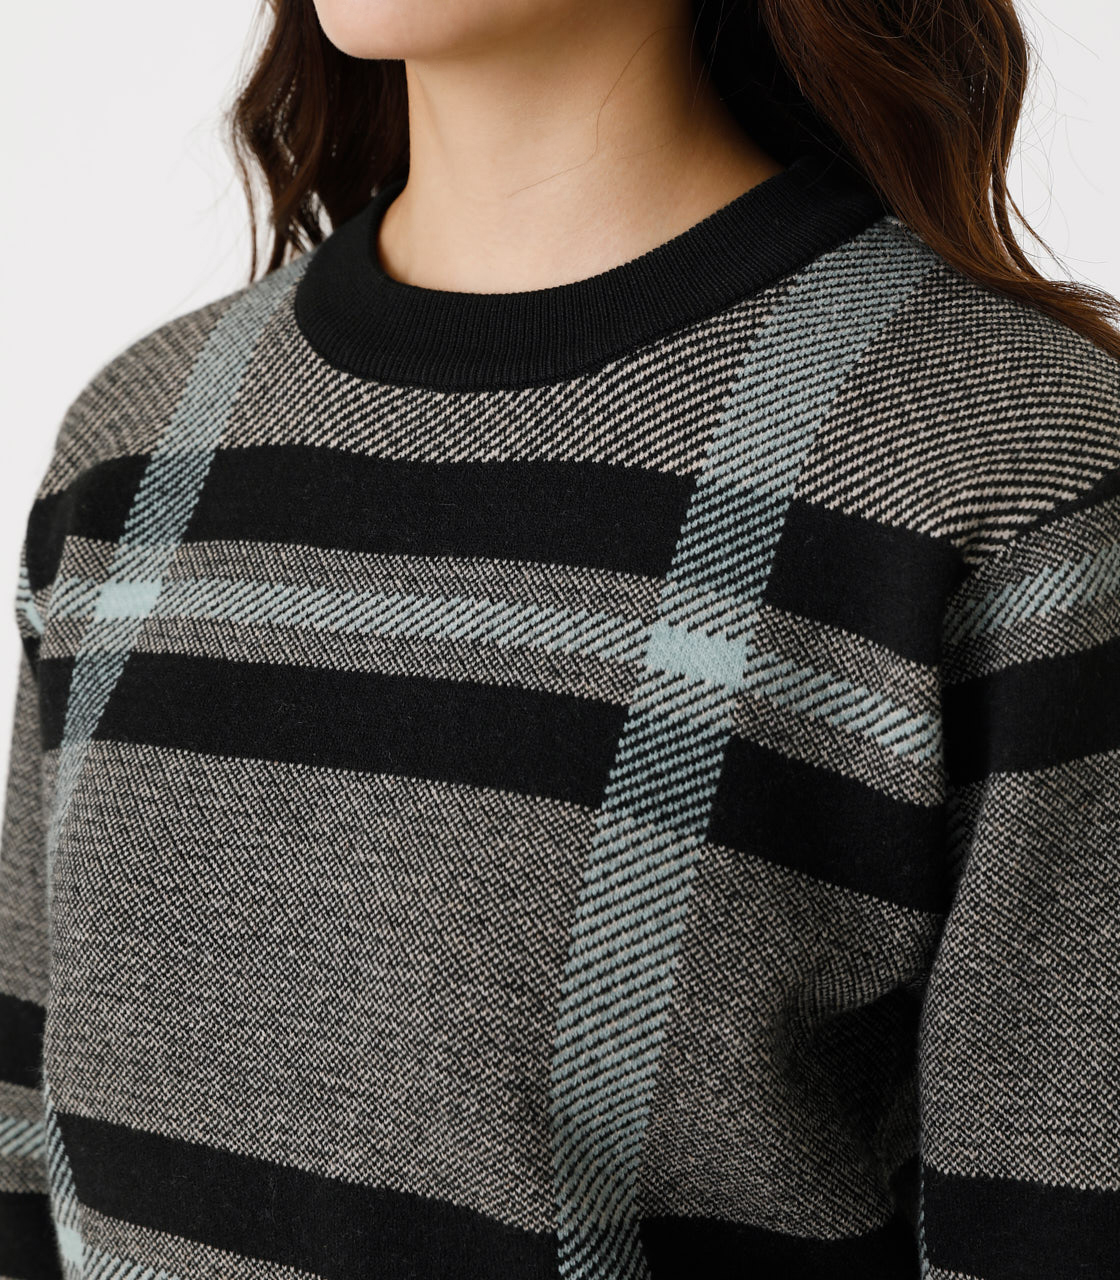 BIG CHECK KNIT TOPS/ビッグチェックニットトップス 詳細画像 柄BLK 8